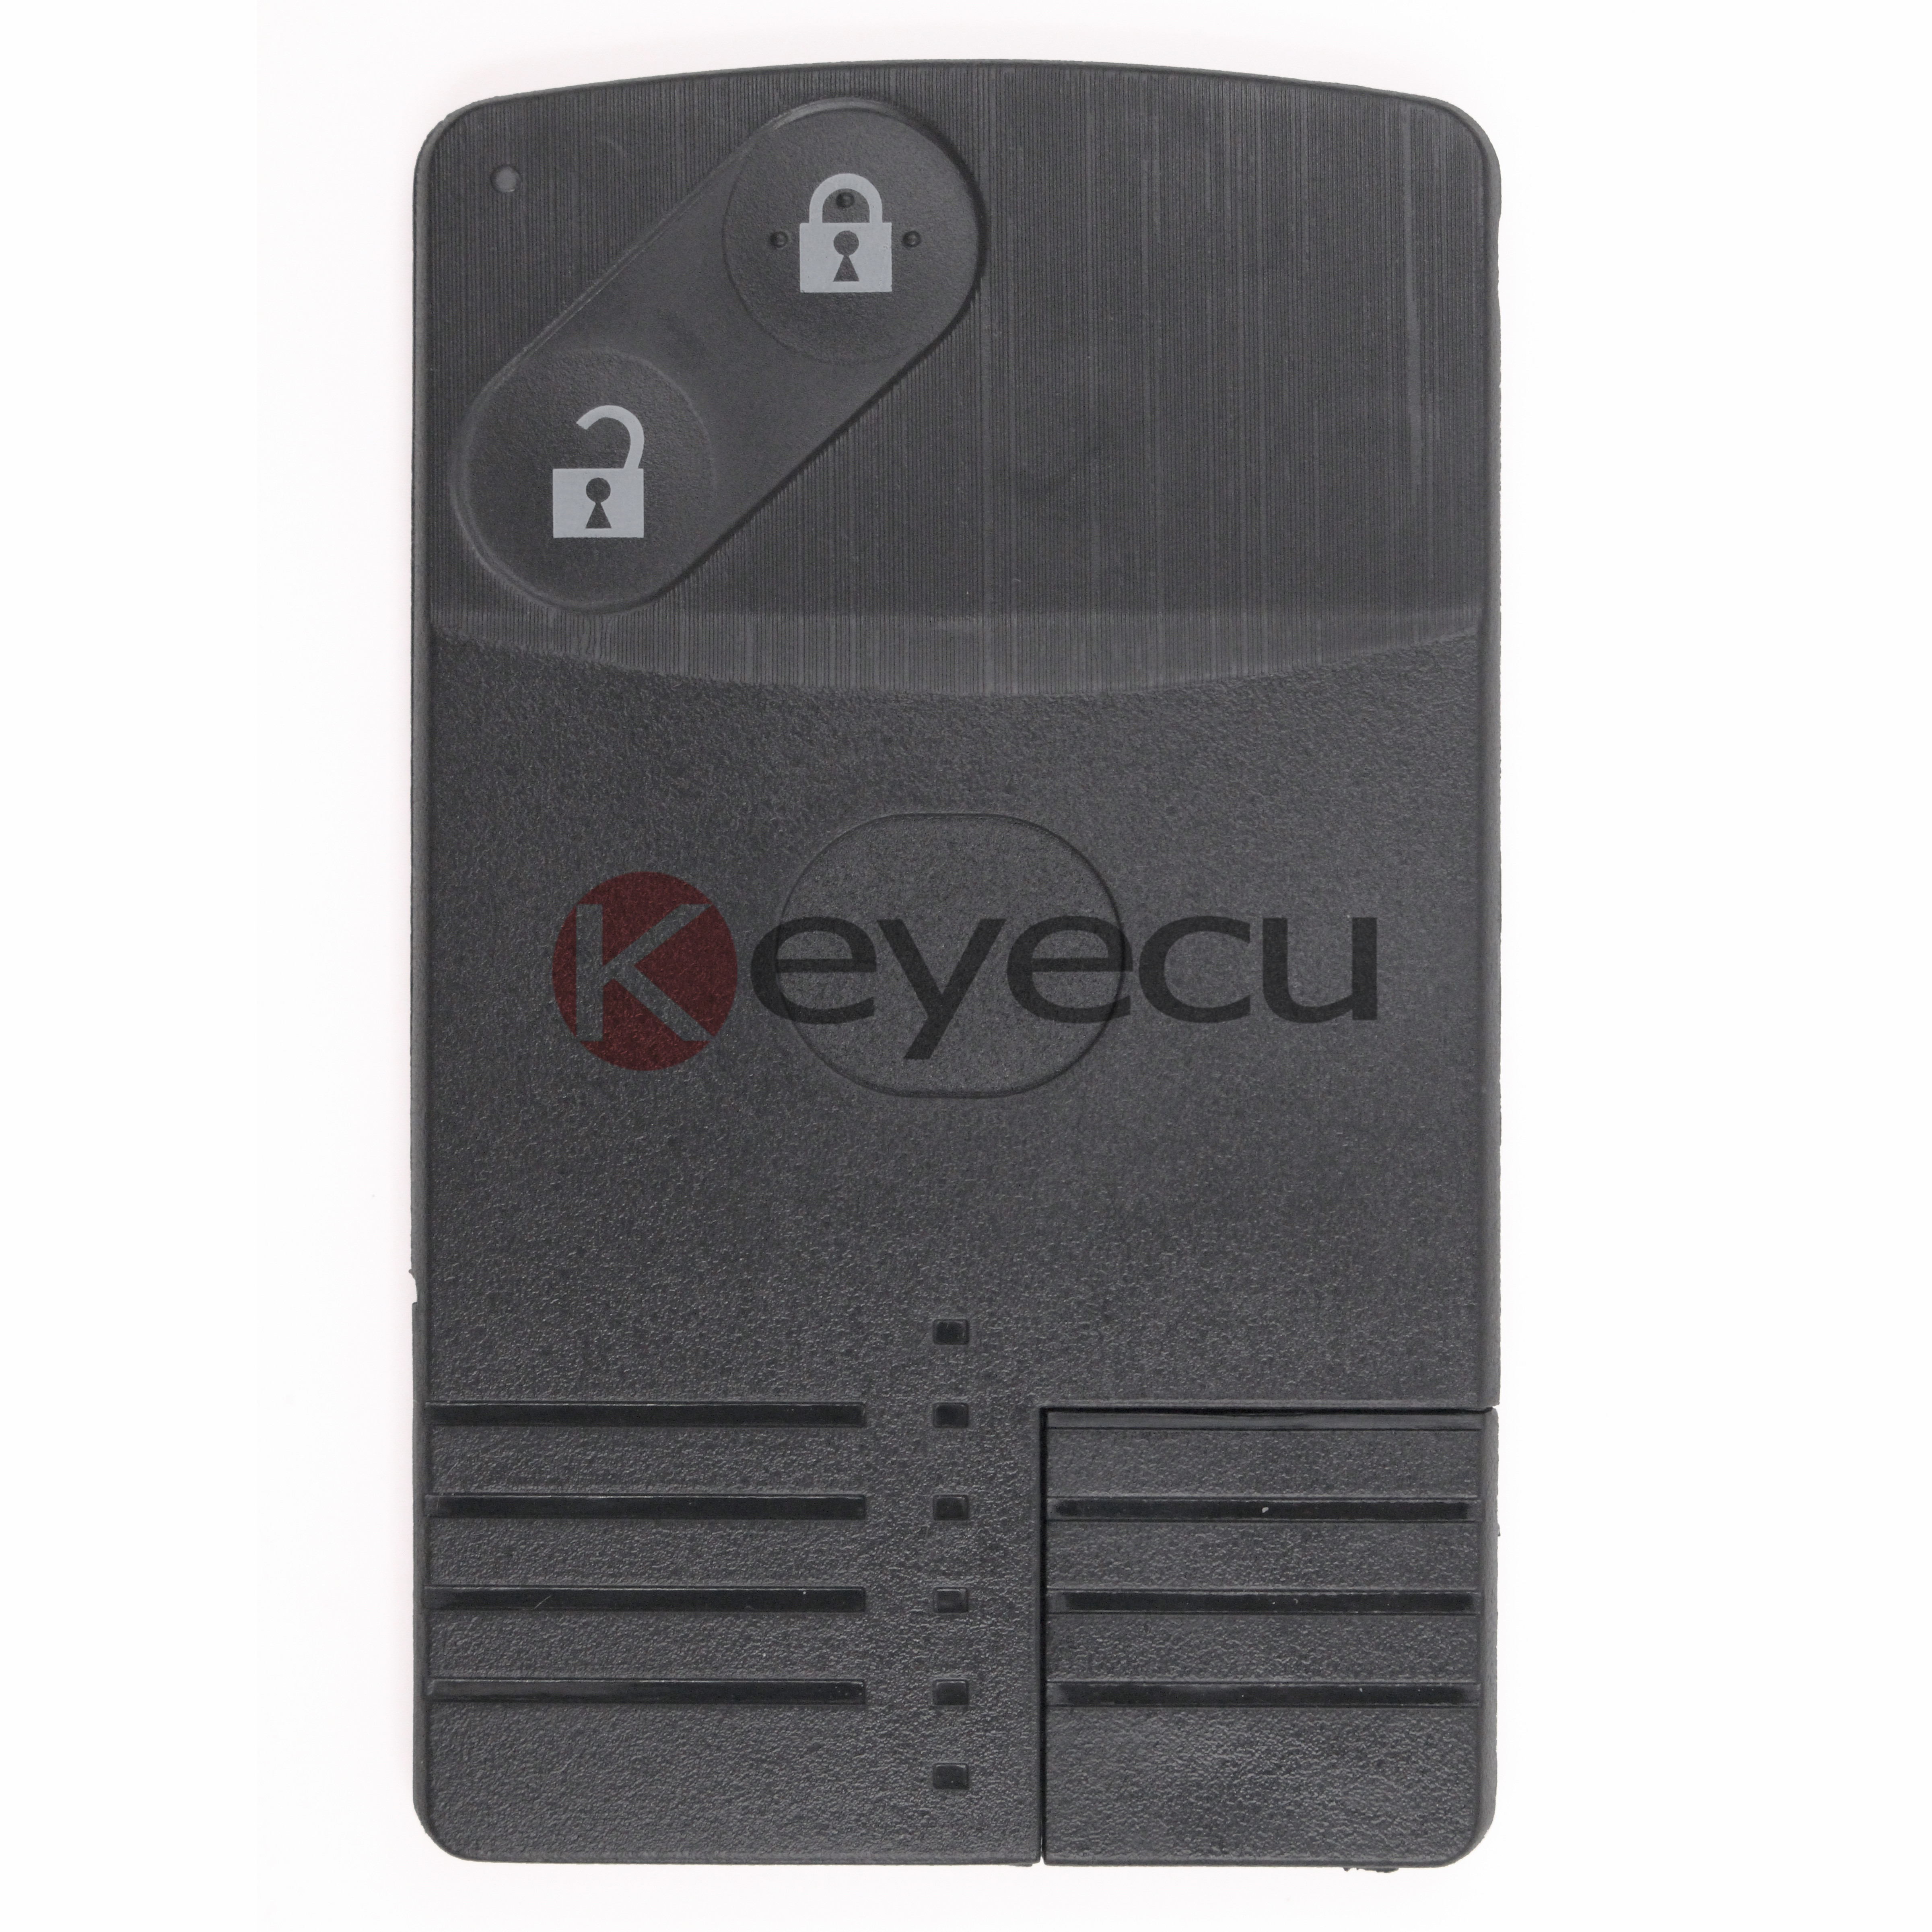 KEYECU High Quality Keyless Entry Smart Card Remote Control Key 2 Button 315MHz 4D63 Chip for Mazda 6 Uncut Blade Inserted